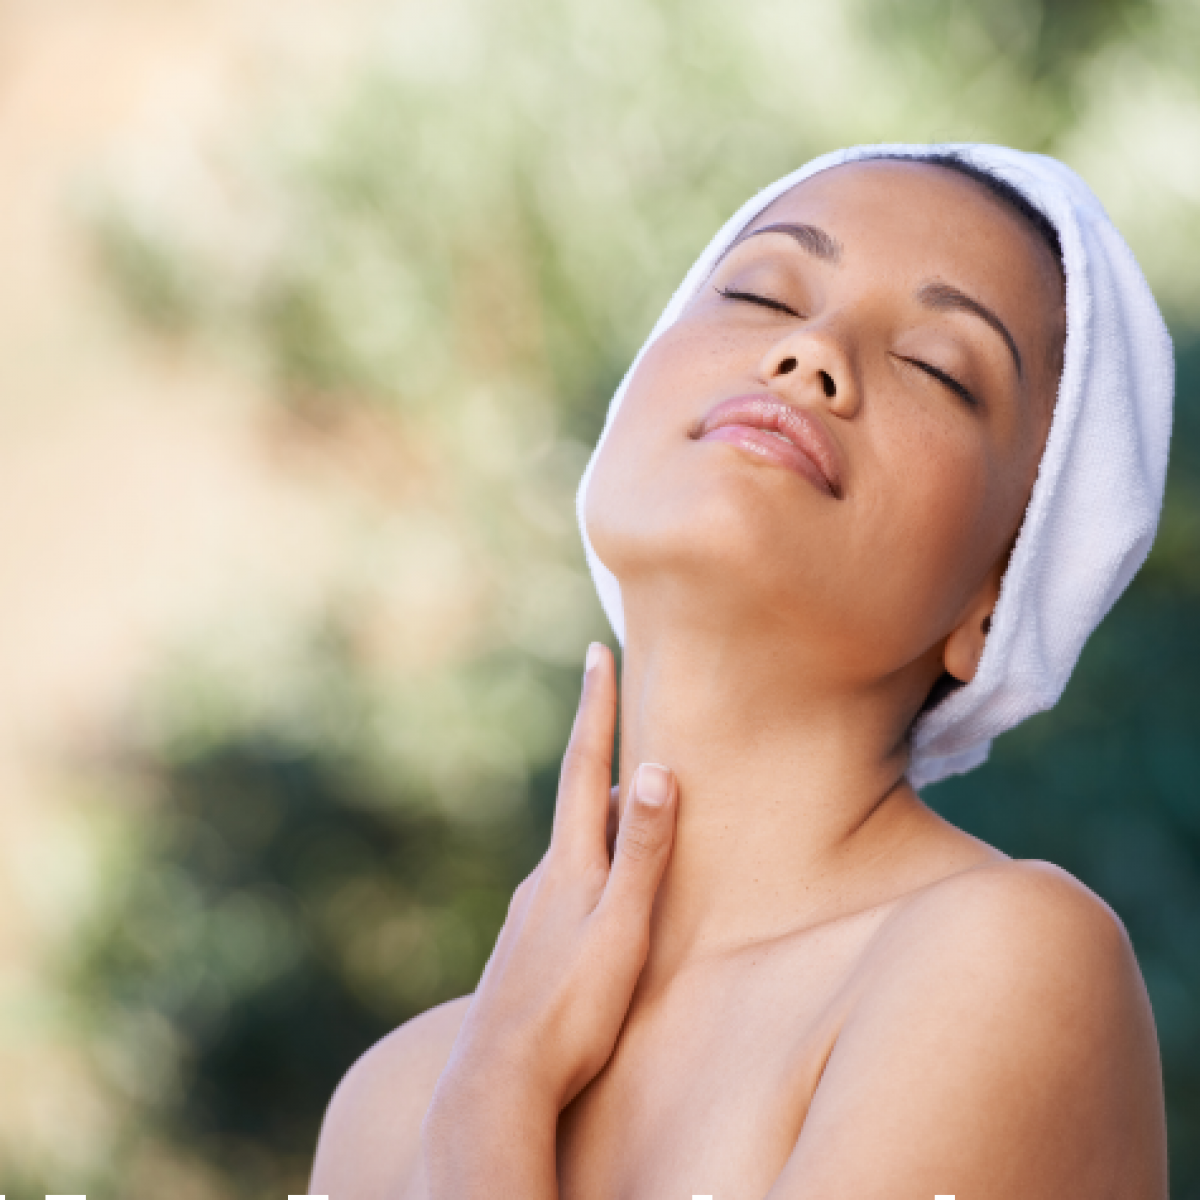 9 Beauty Products To Help You Keep Calm During The Coronavirus Outbreak